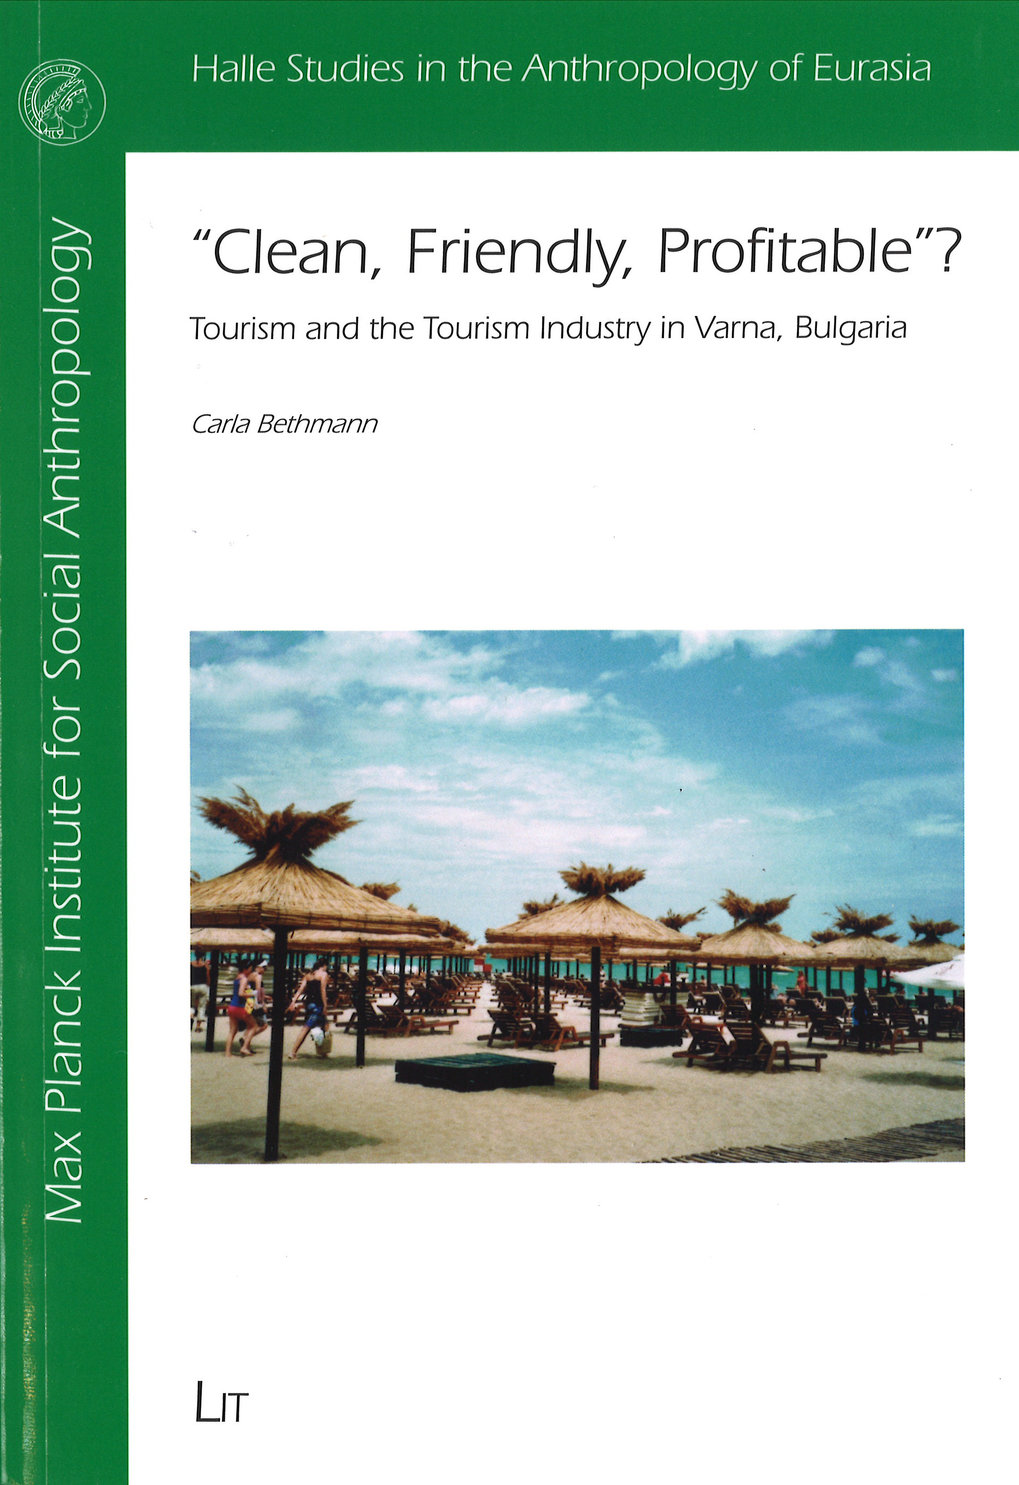 """Clean, Friendly, Profitable""? Tourism and the Tourism Industry in Varna, Bulgaria"